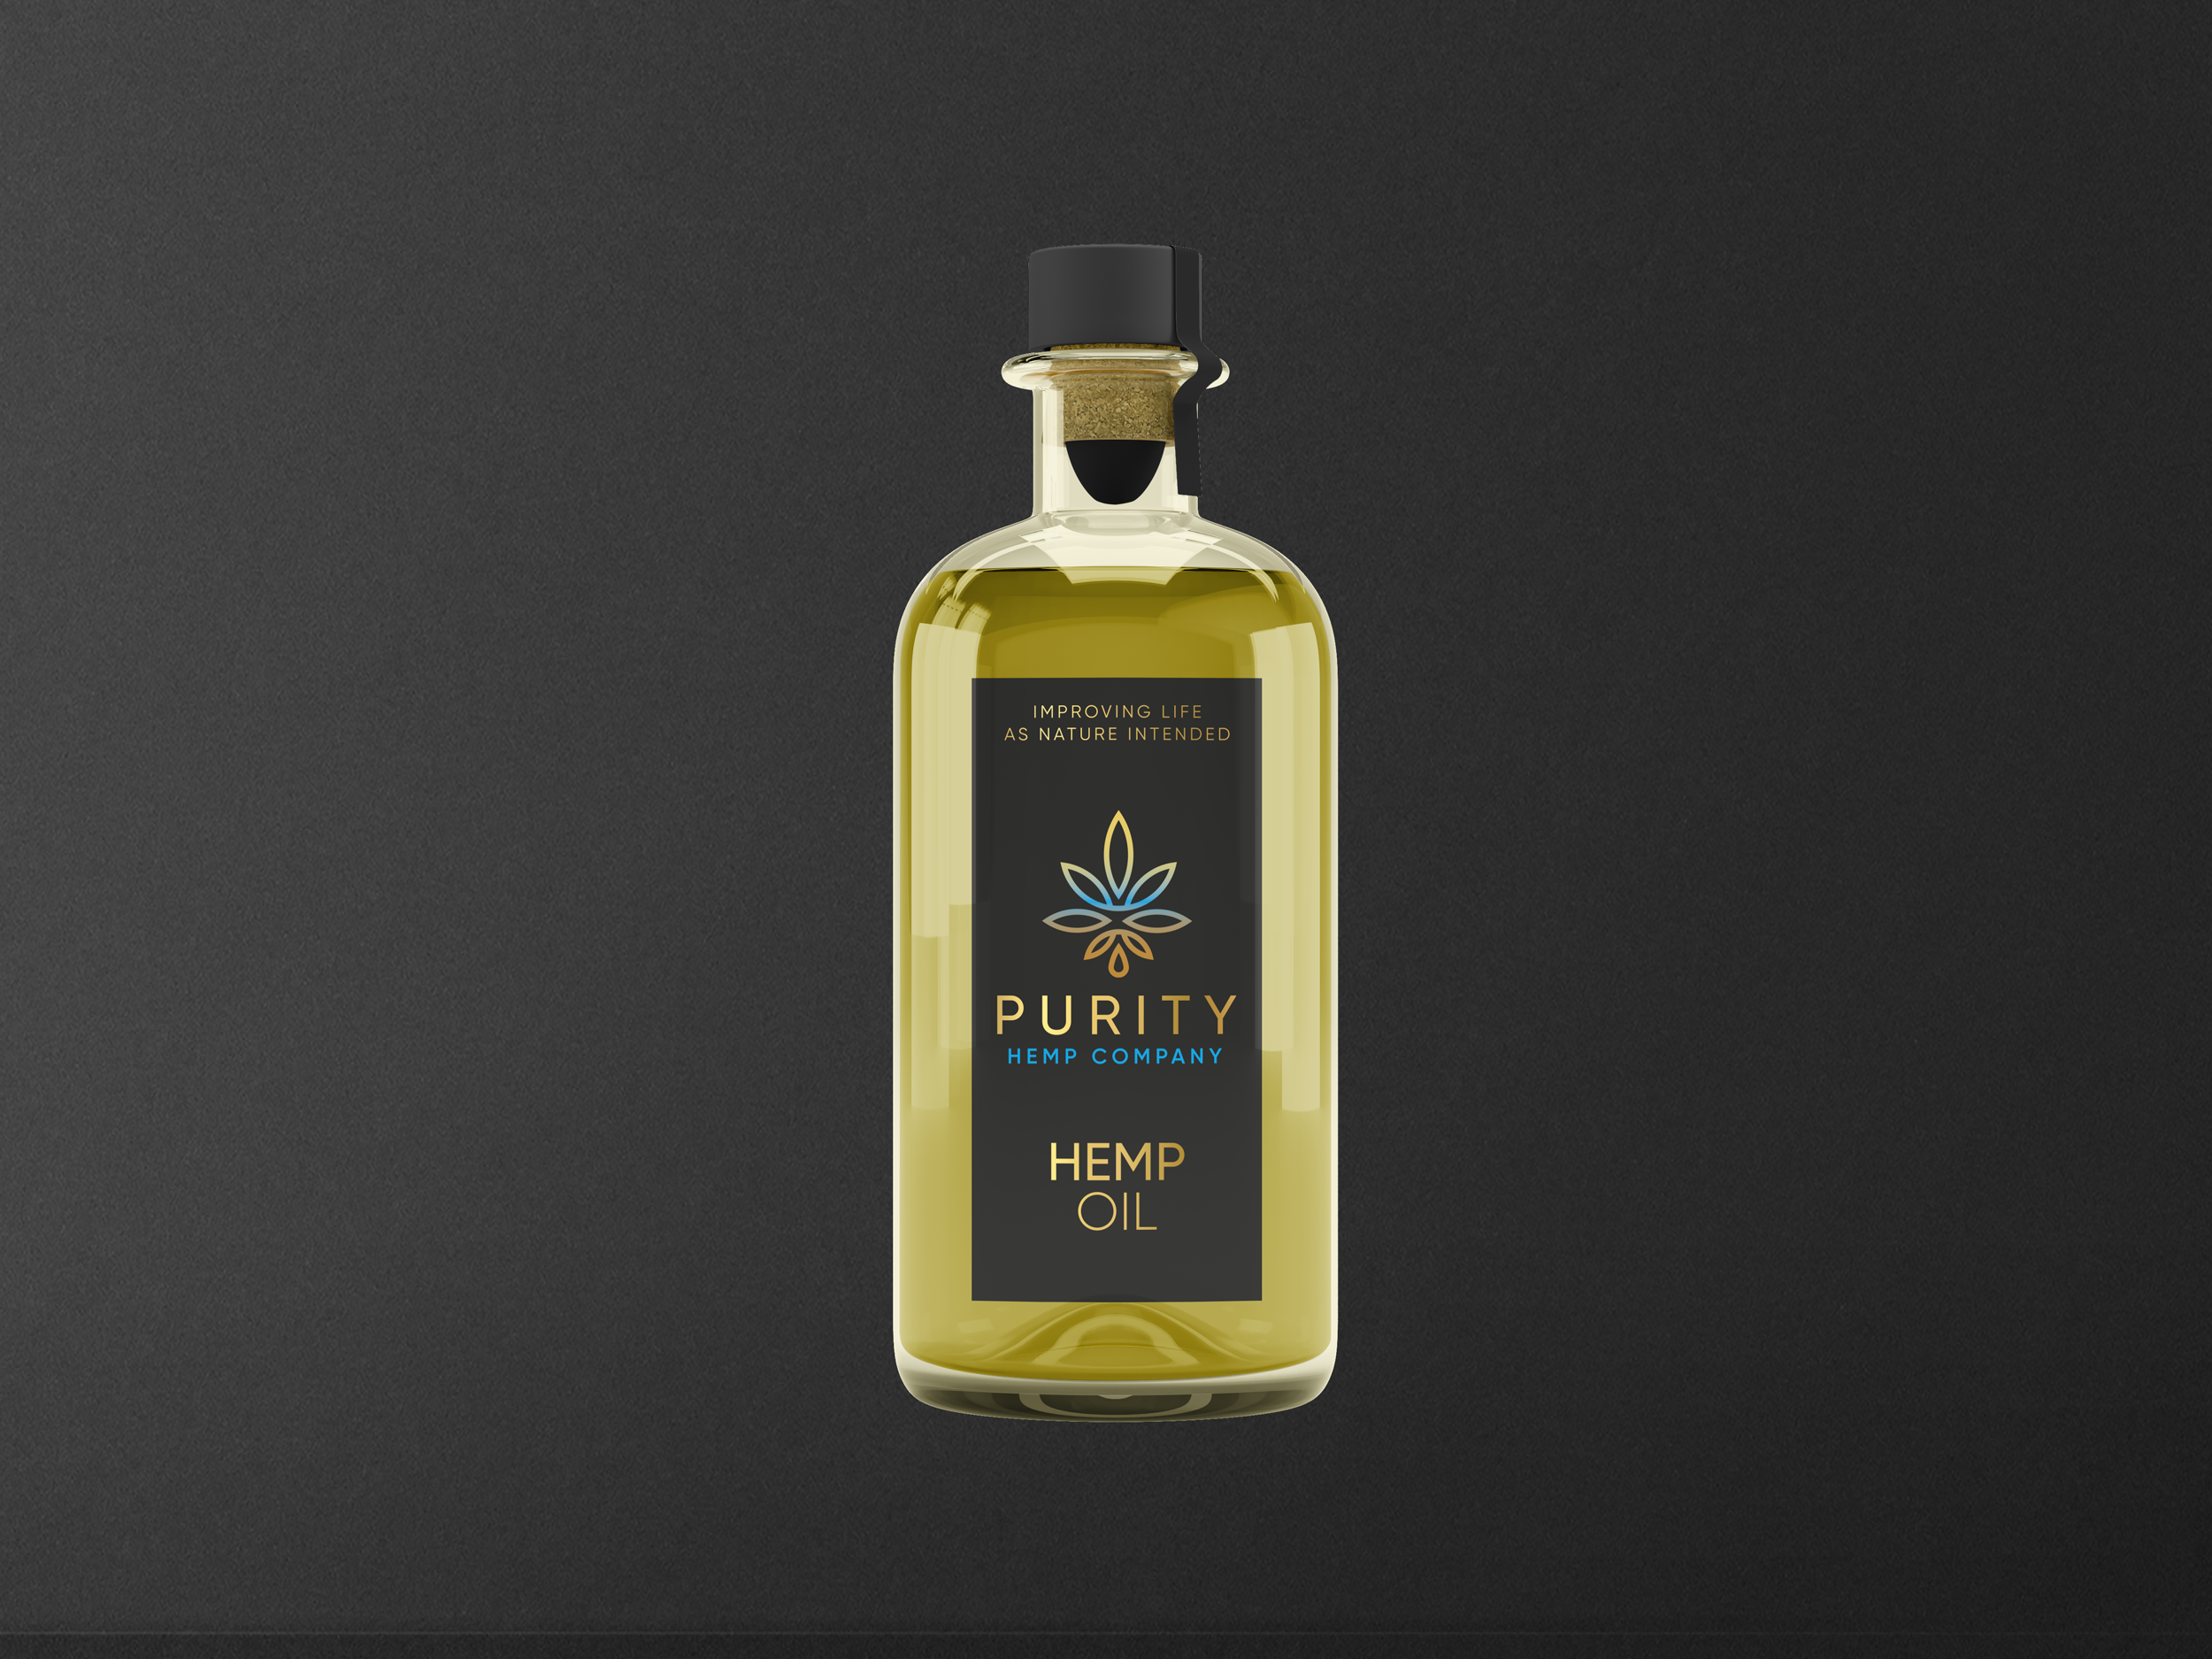 Download Purity Hemp Company - brand identity, guideline and assets.